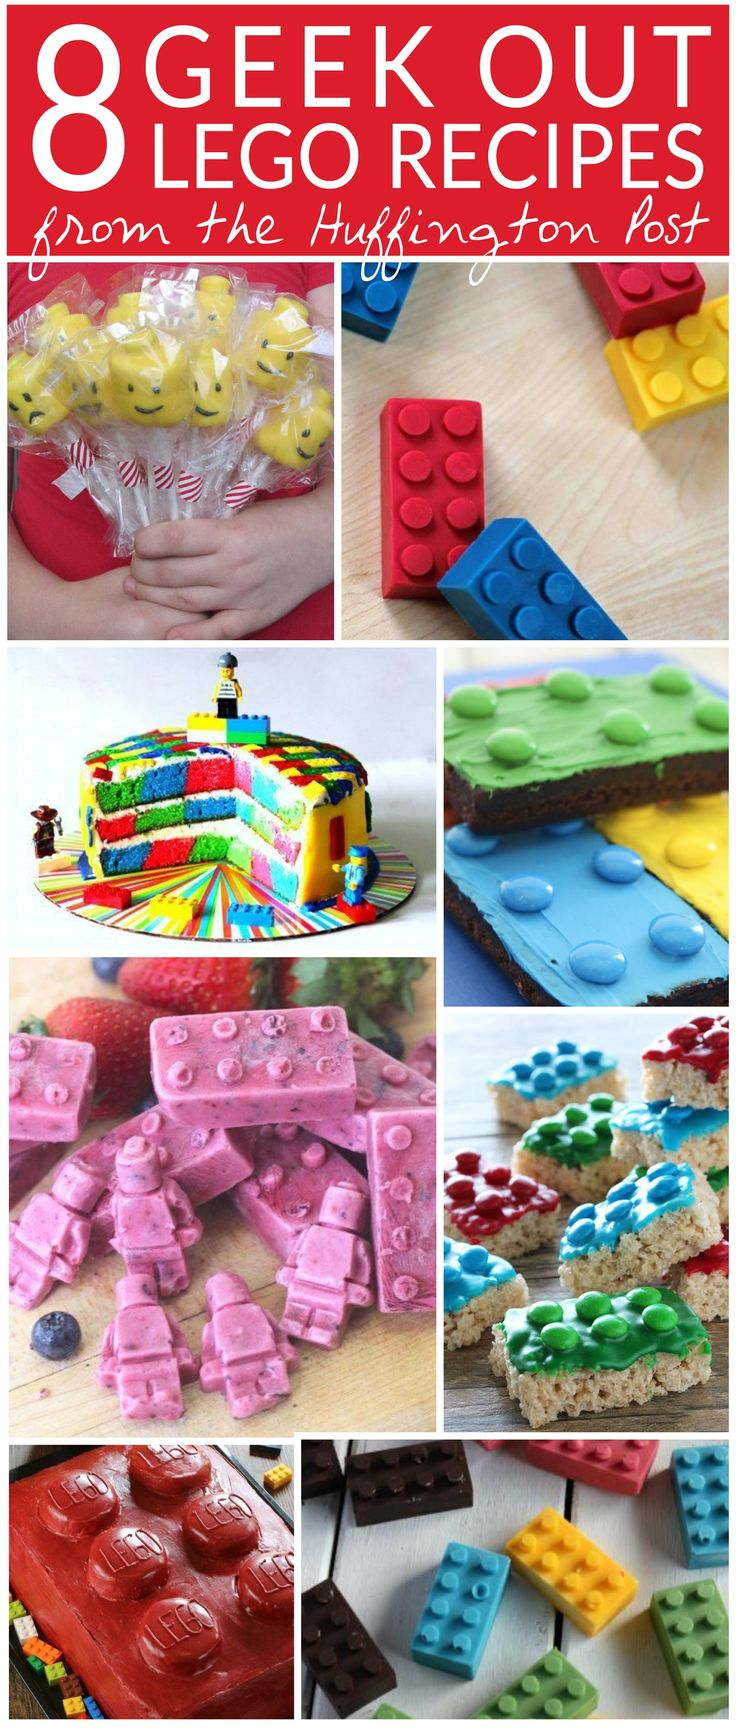 Lego treats are a great way to liven up a kid's party or make snack time special. Get your geek on with brownies, cakes, marshmallow pops, frozen yogurt bites, cake pops, chocolates, and other tasty treats baked and shaped into beloved Lego blocks. Easy birthday party treats. Lego birthday party. Lego party ideas.